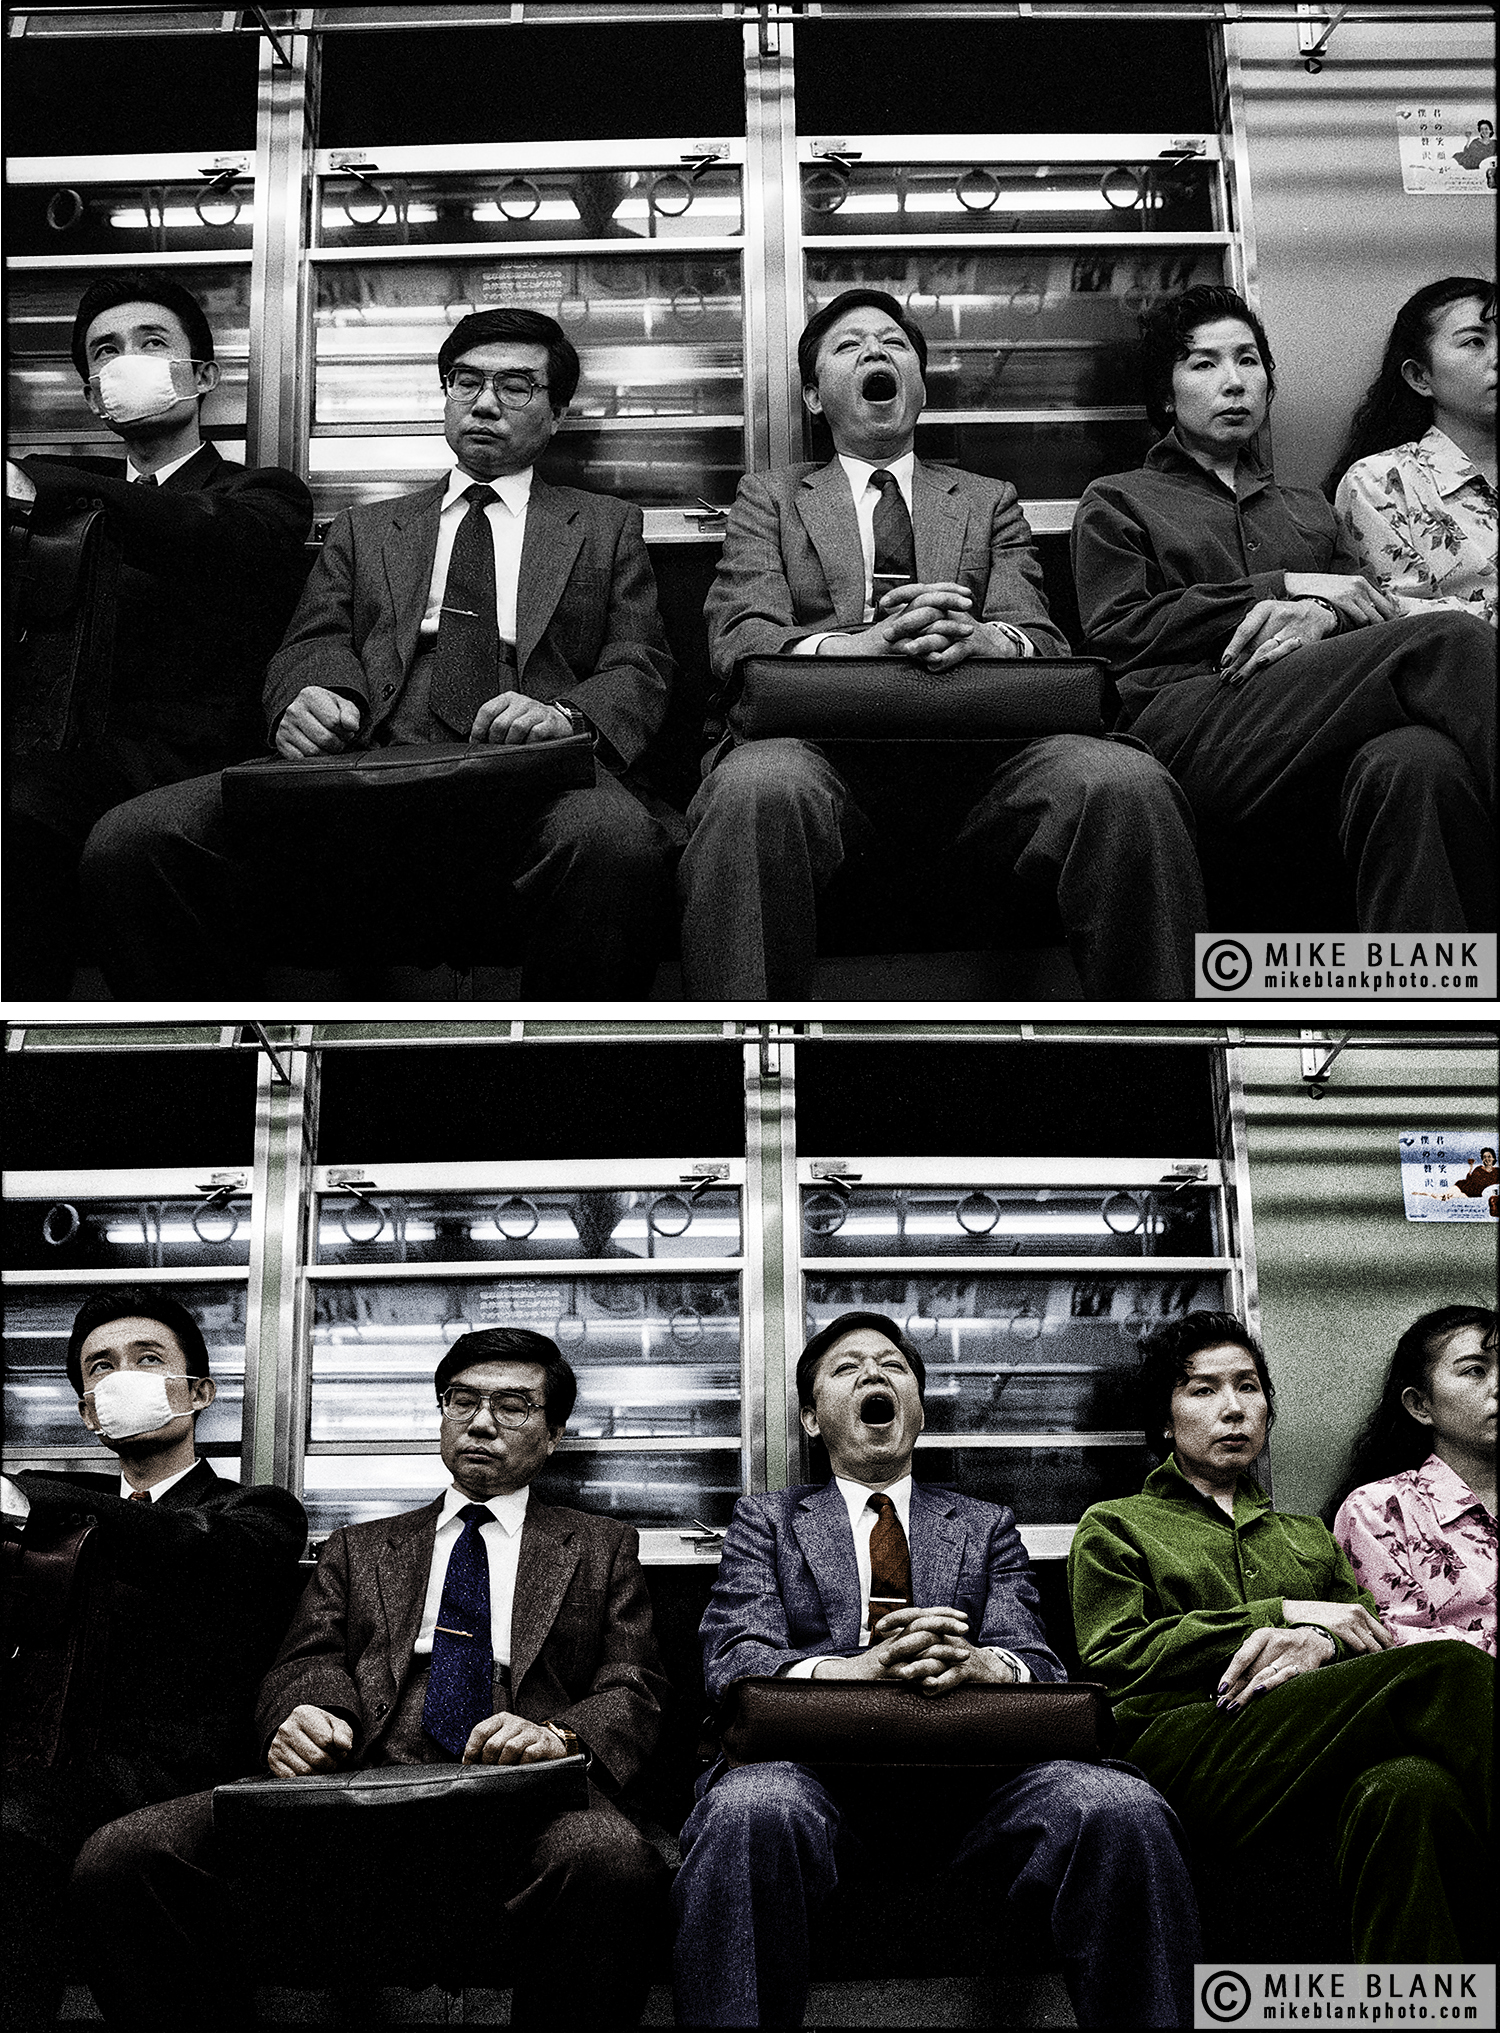 Colourised, Commuters Tokyo subway 1991